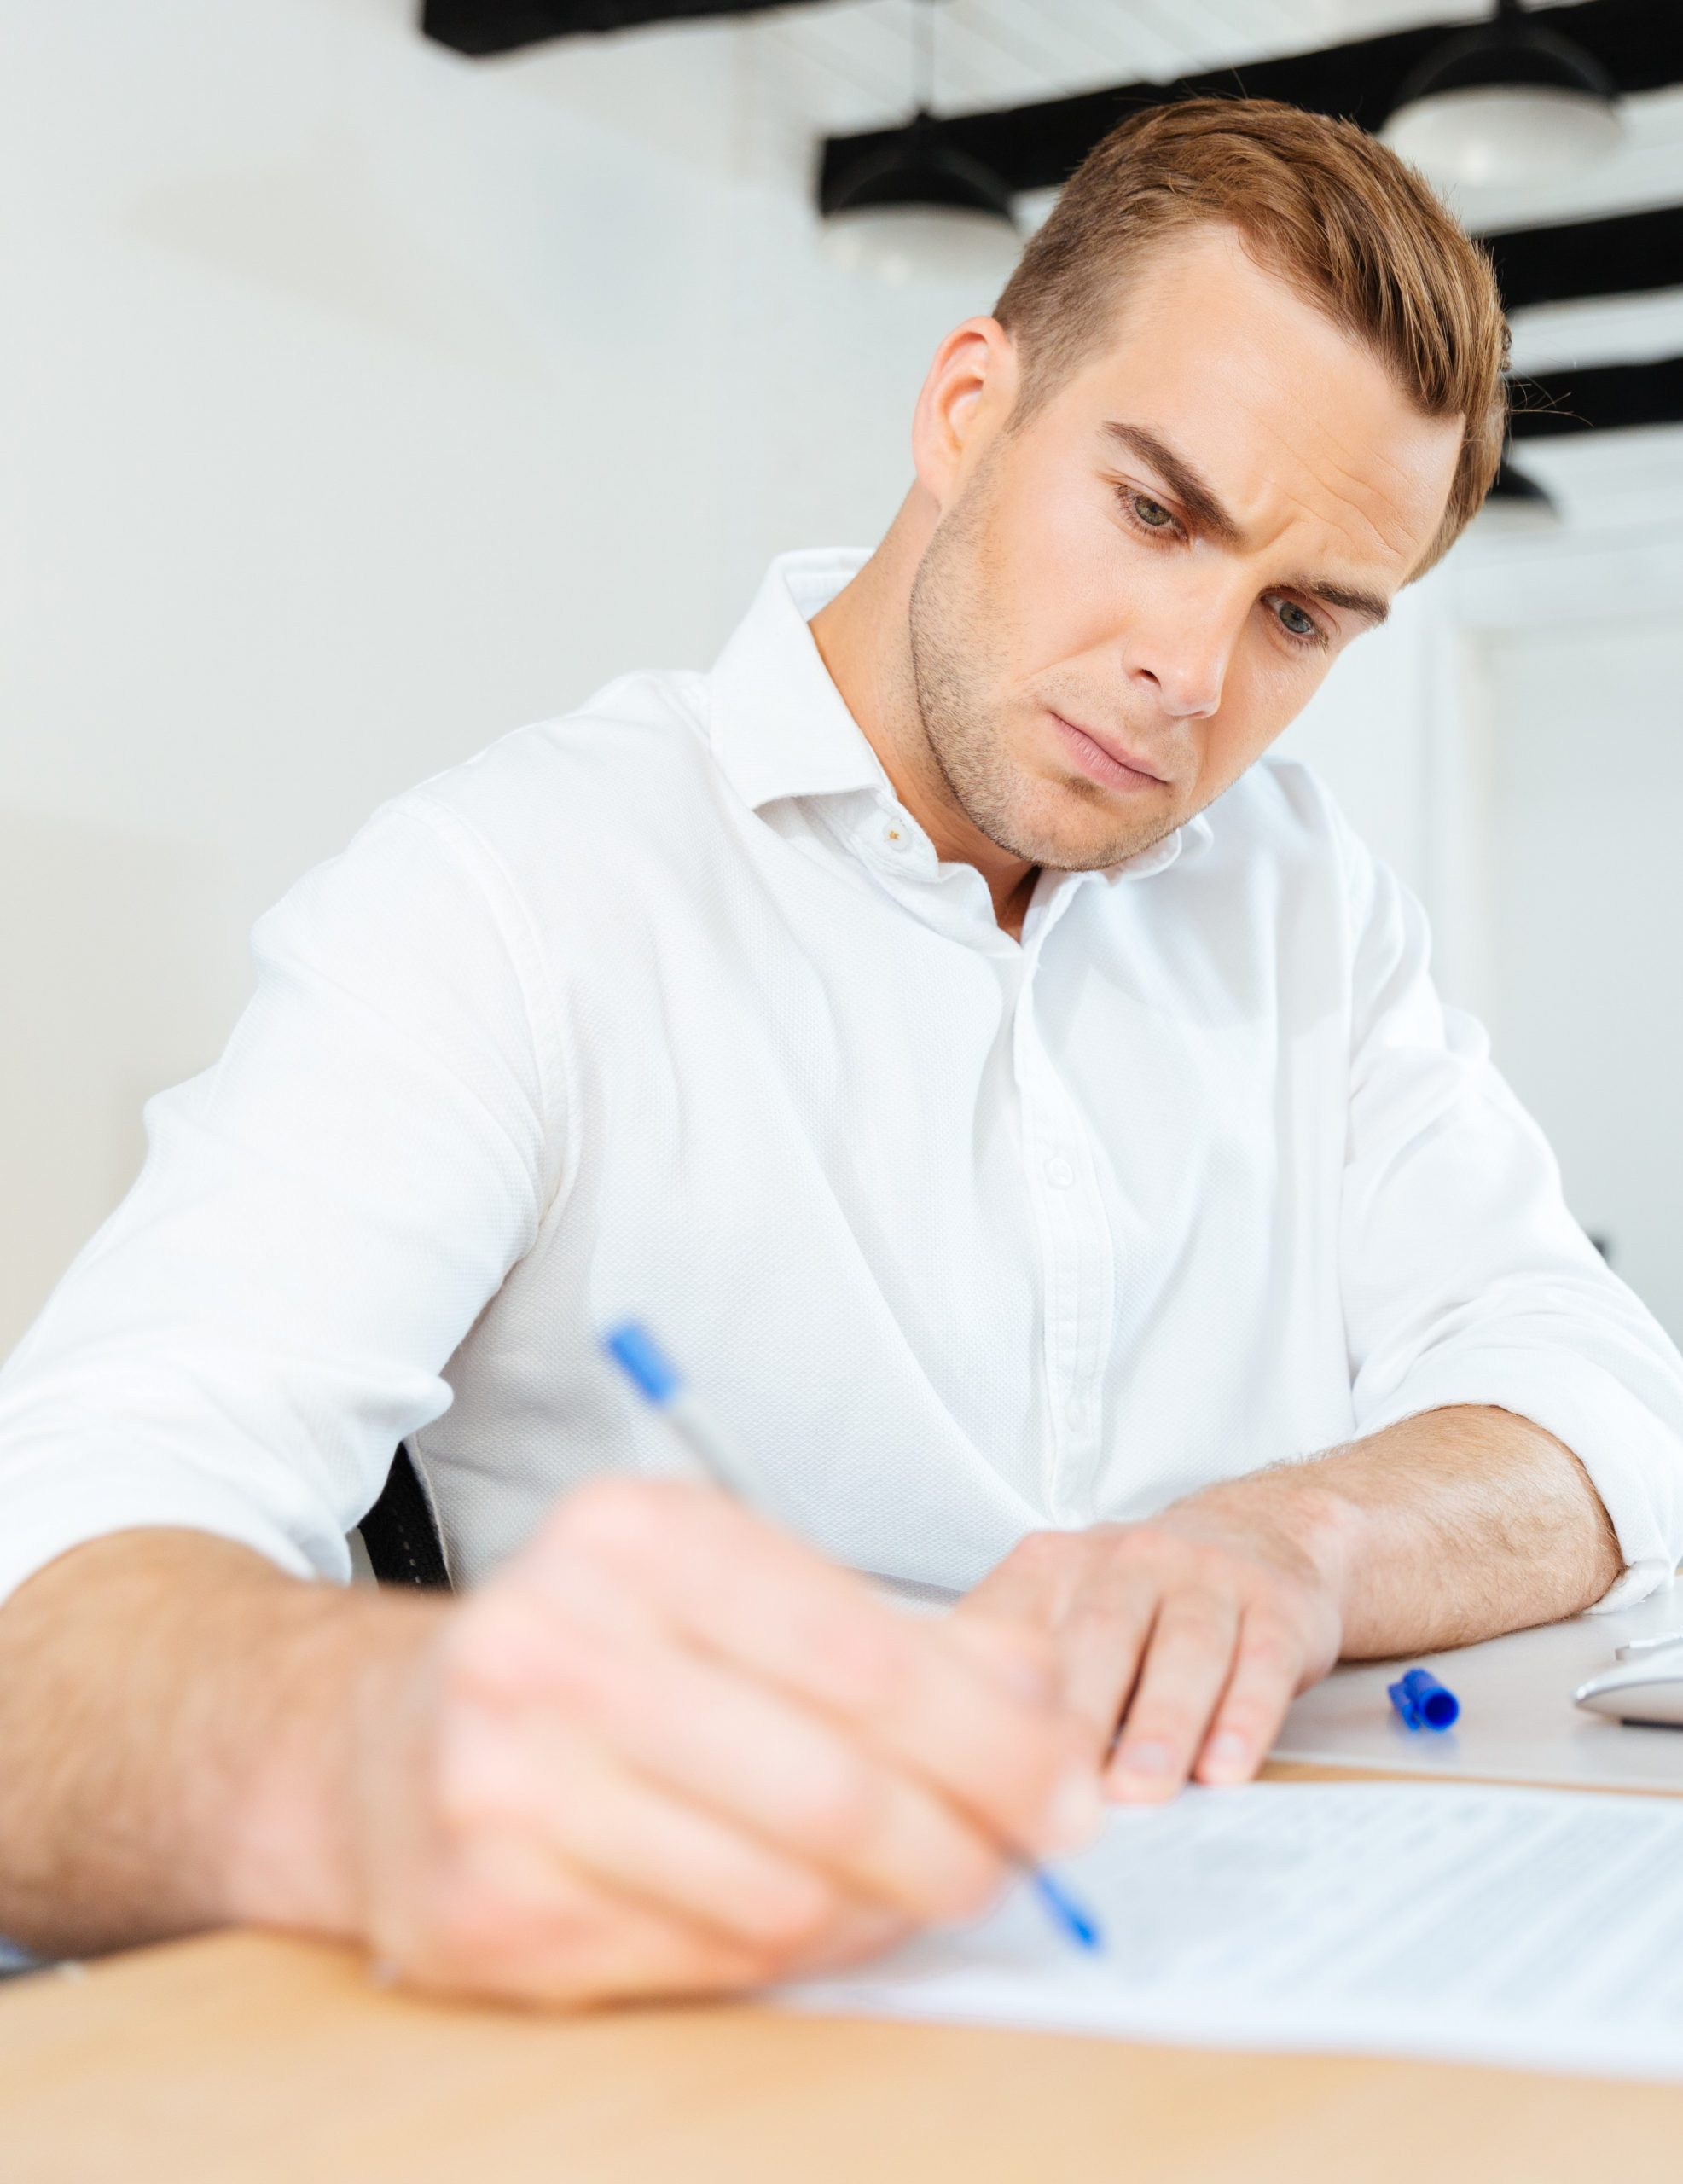 Should my cover letter be generic or tailored?